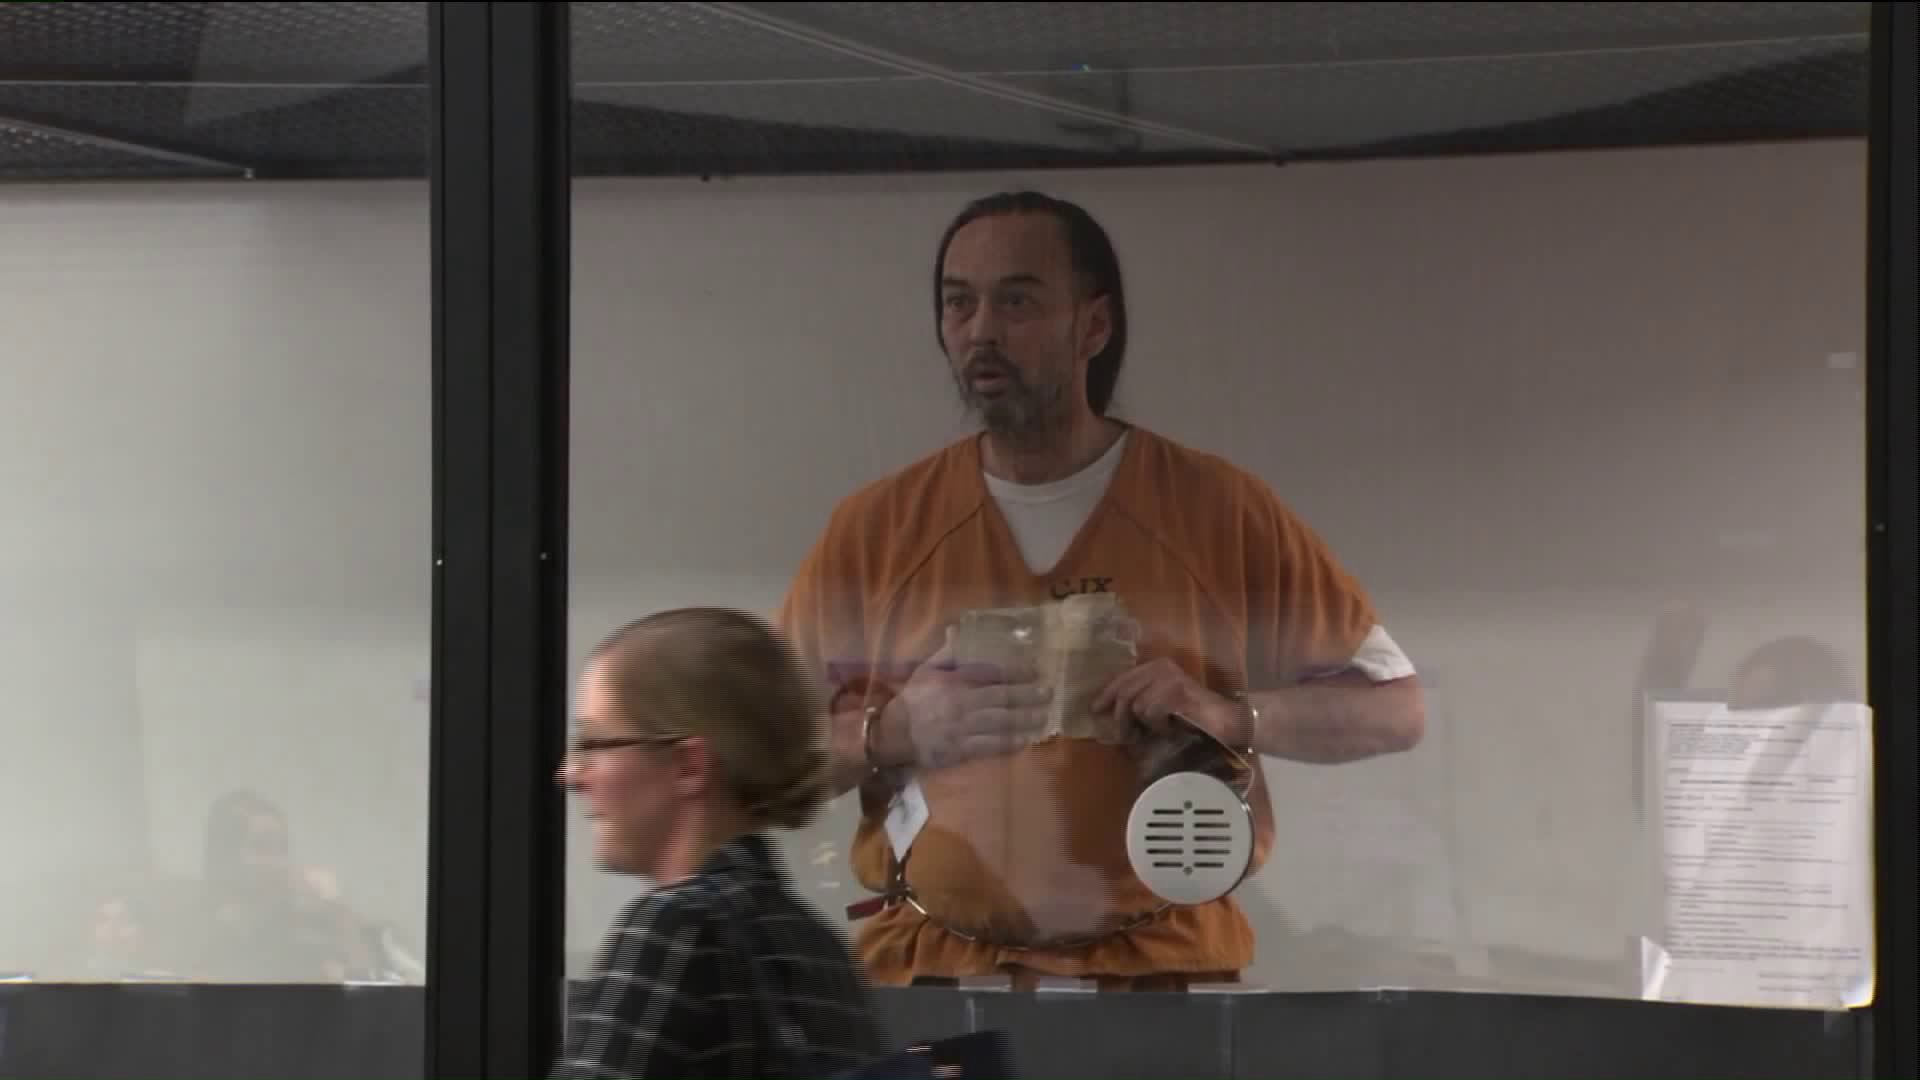 Forrest Gordon Clark appeared in court on Aug. 17, 2018. (Credit: Pool)